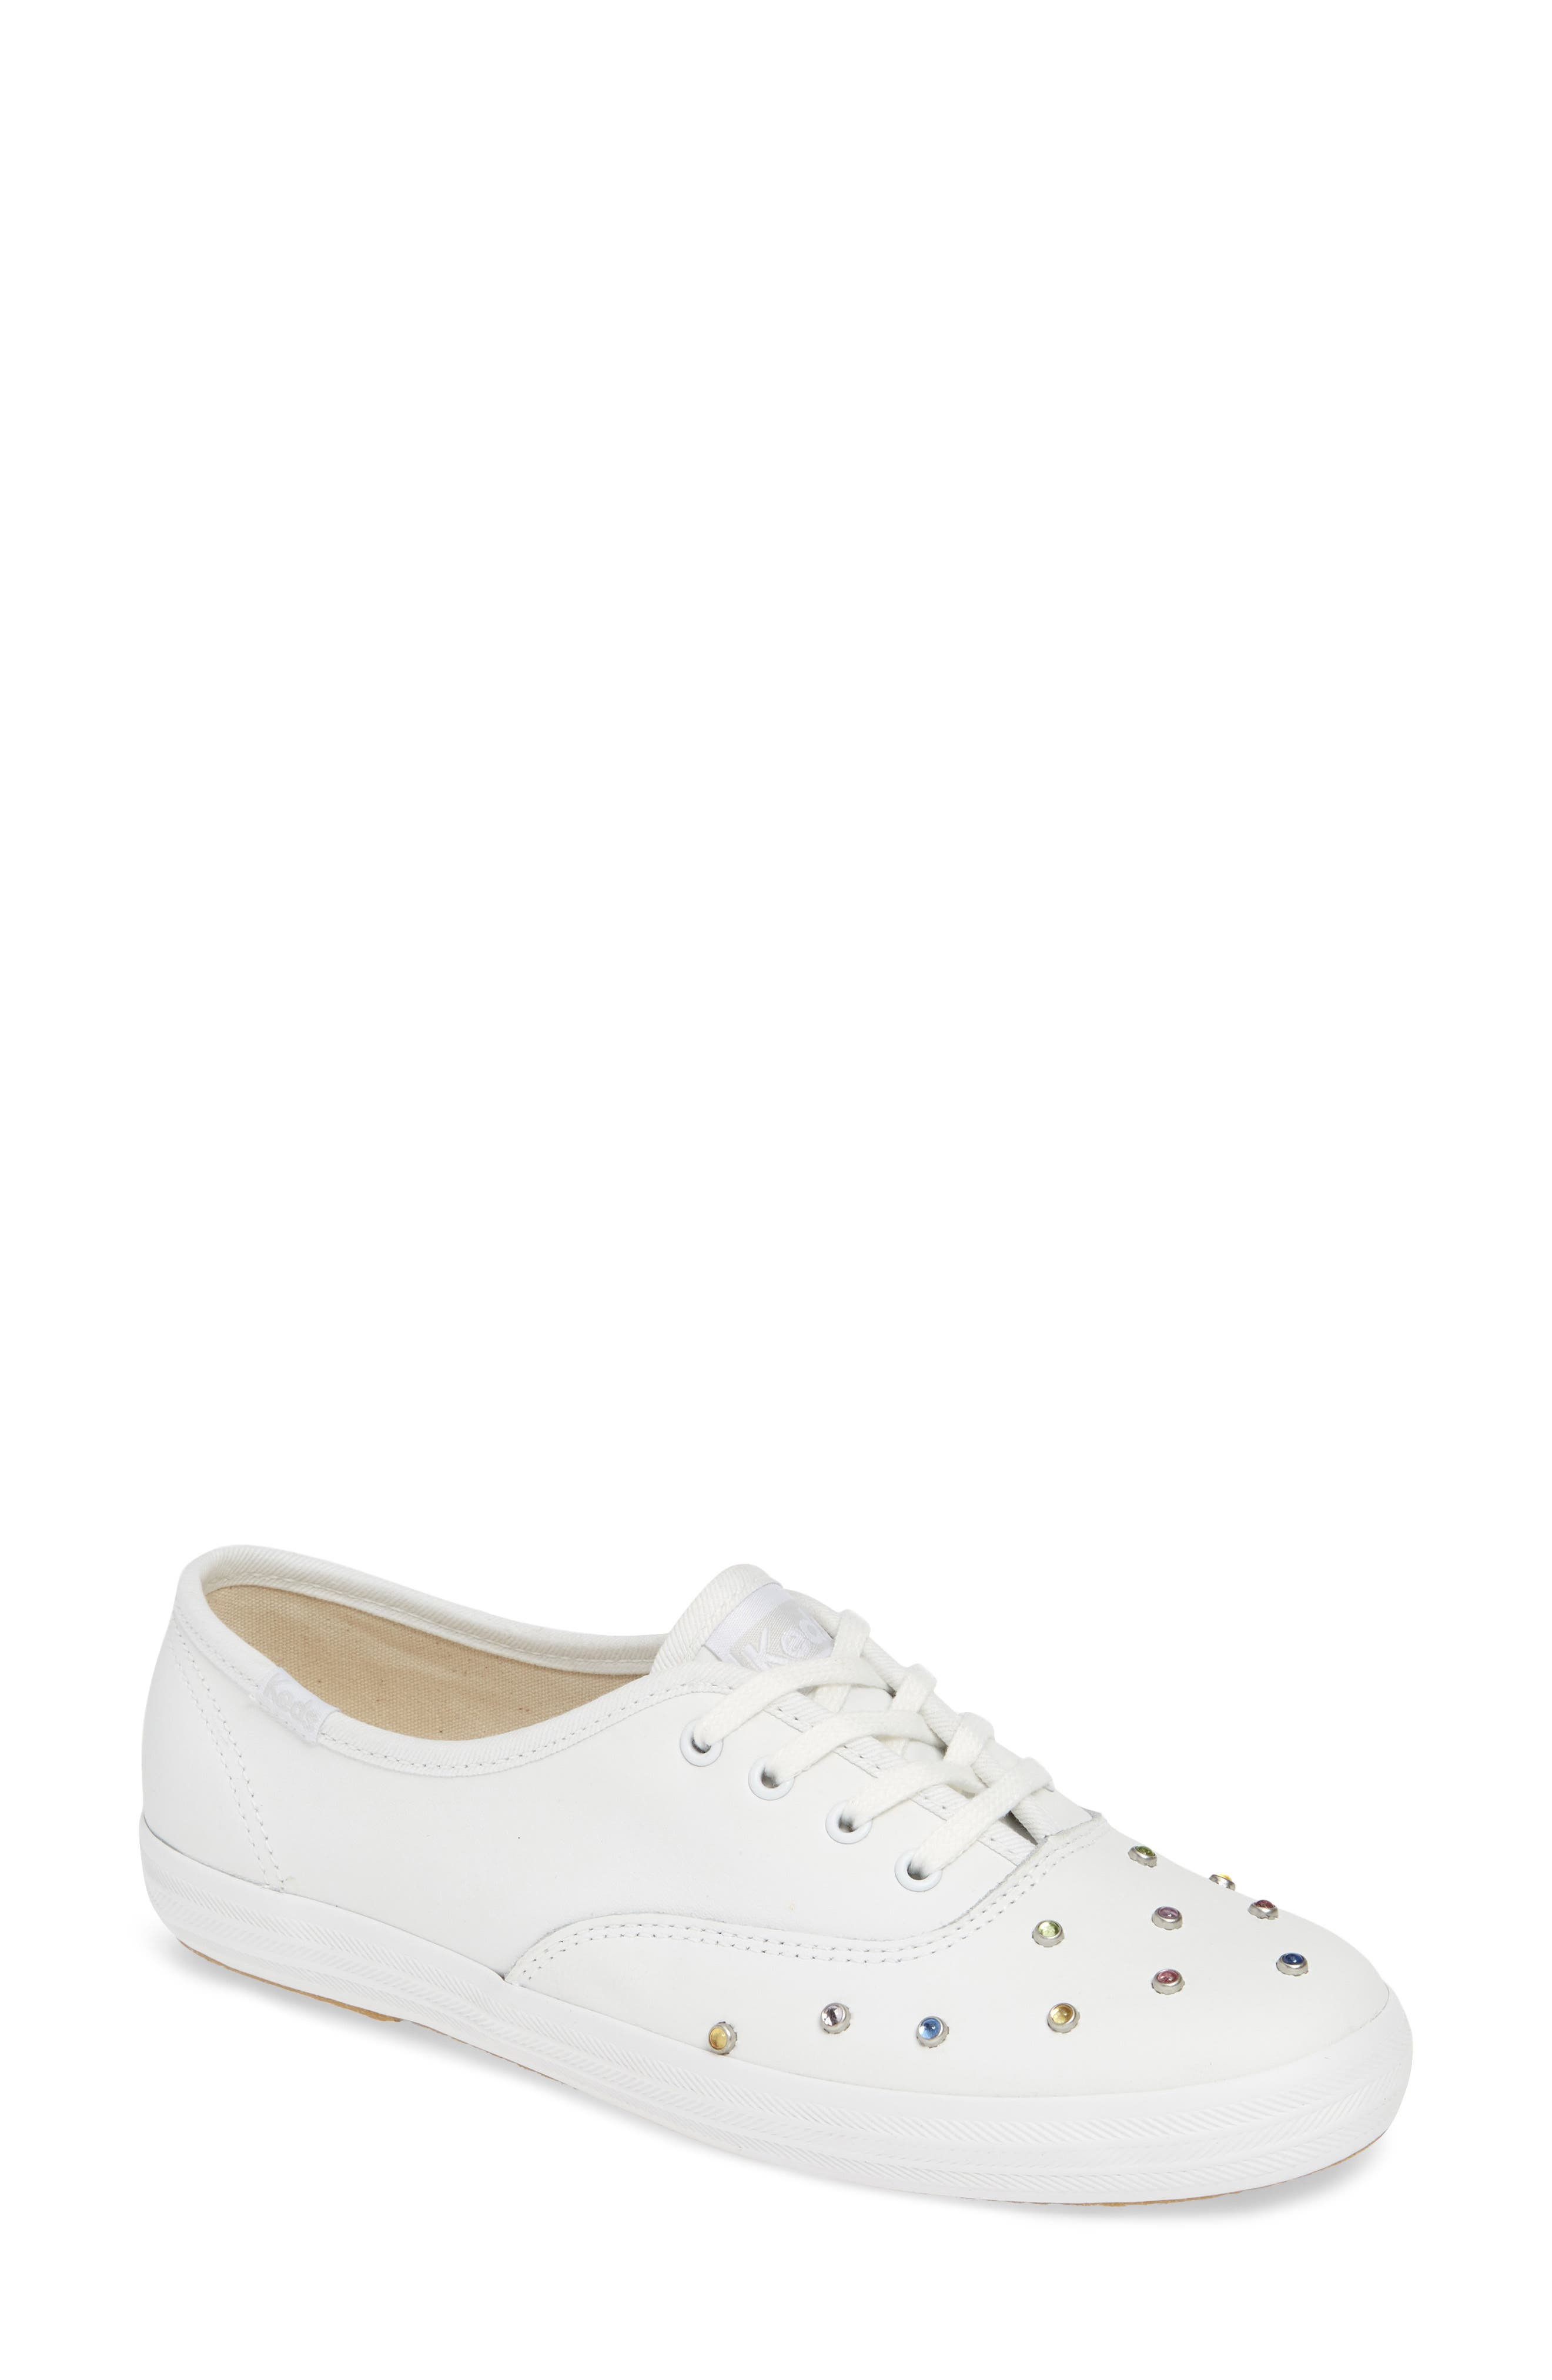 KEDS<SUP>®</SUP> Champion Starlight Stud Sneaker, Main, color, WHITE